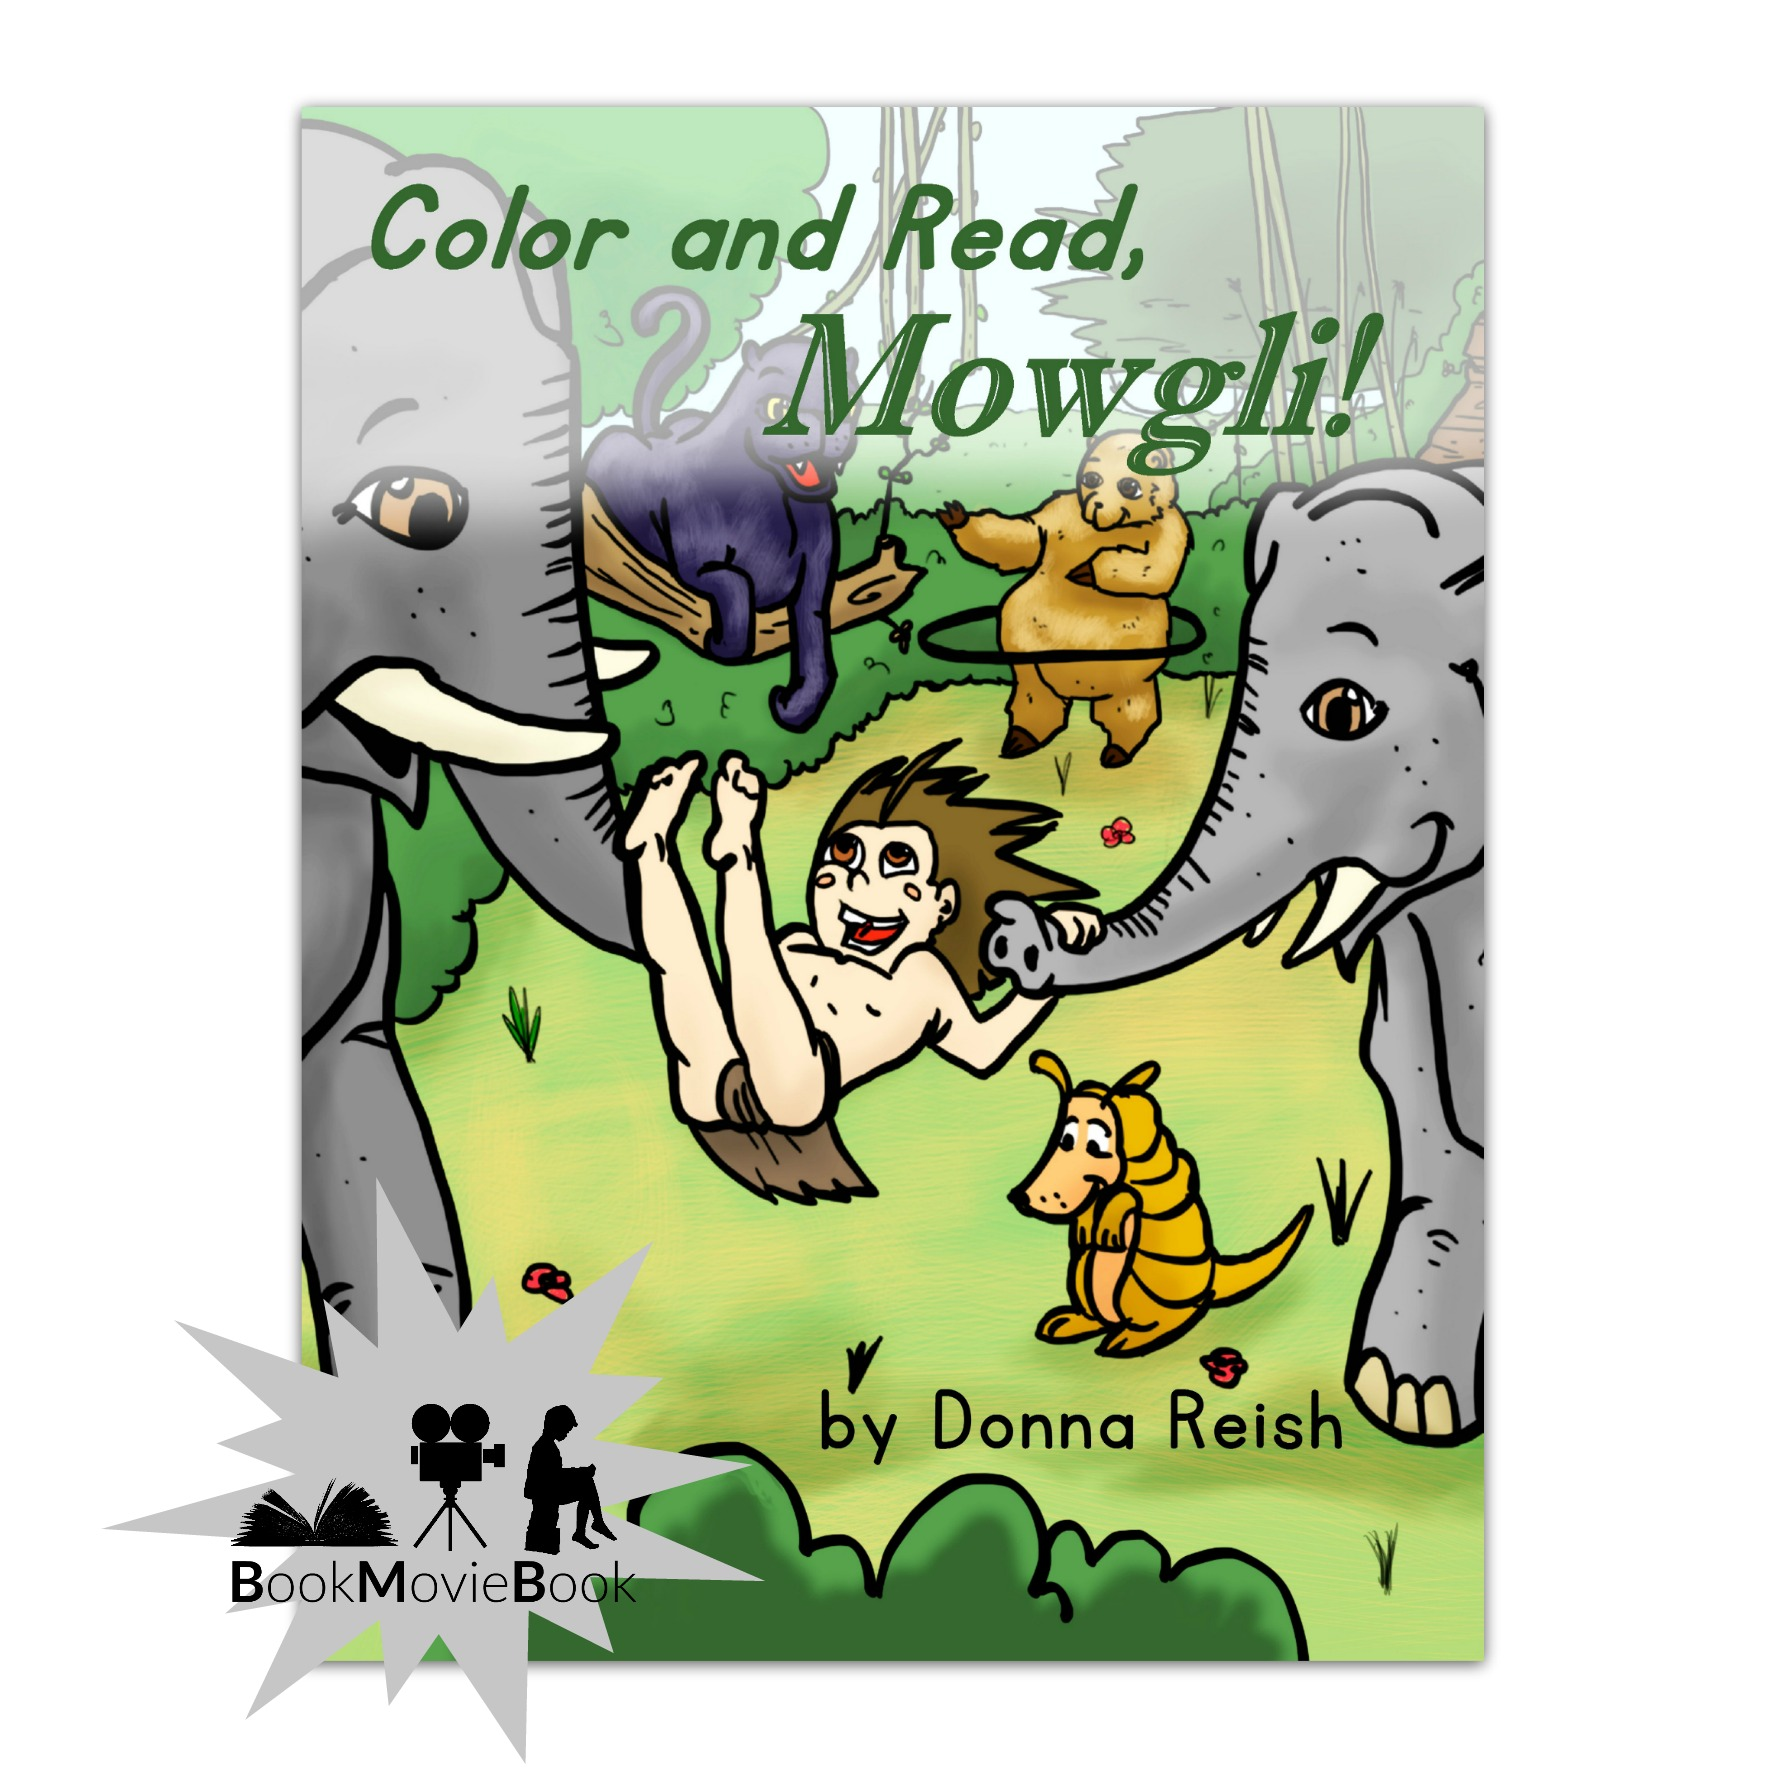 Color and Read, Mowgli!